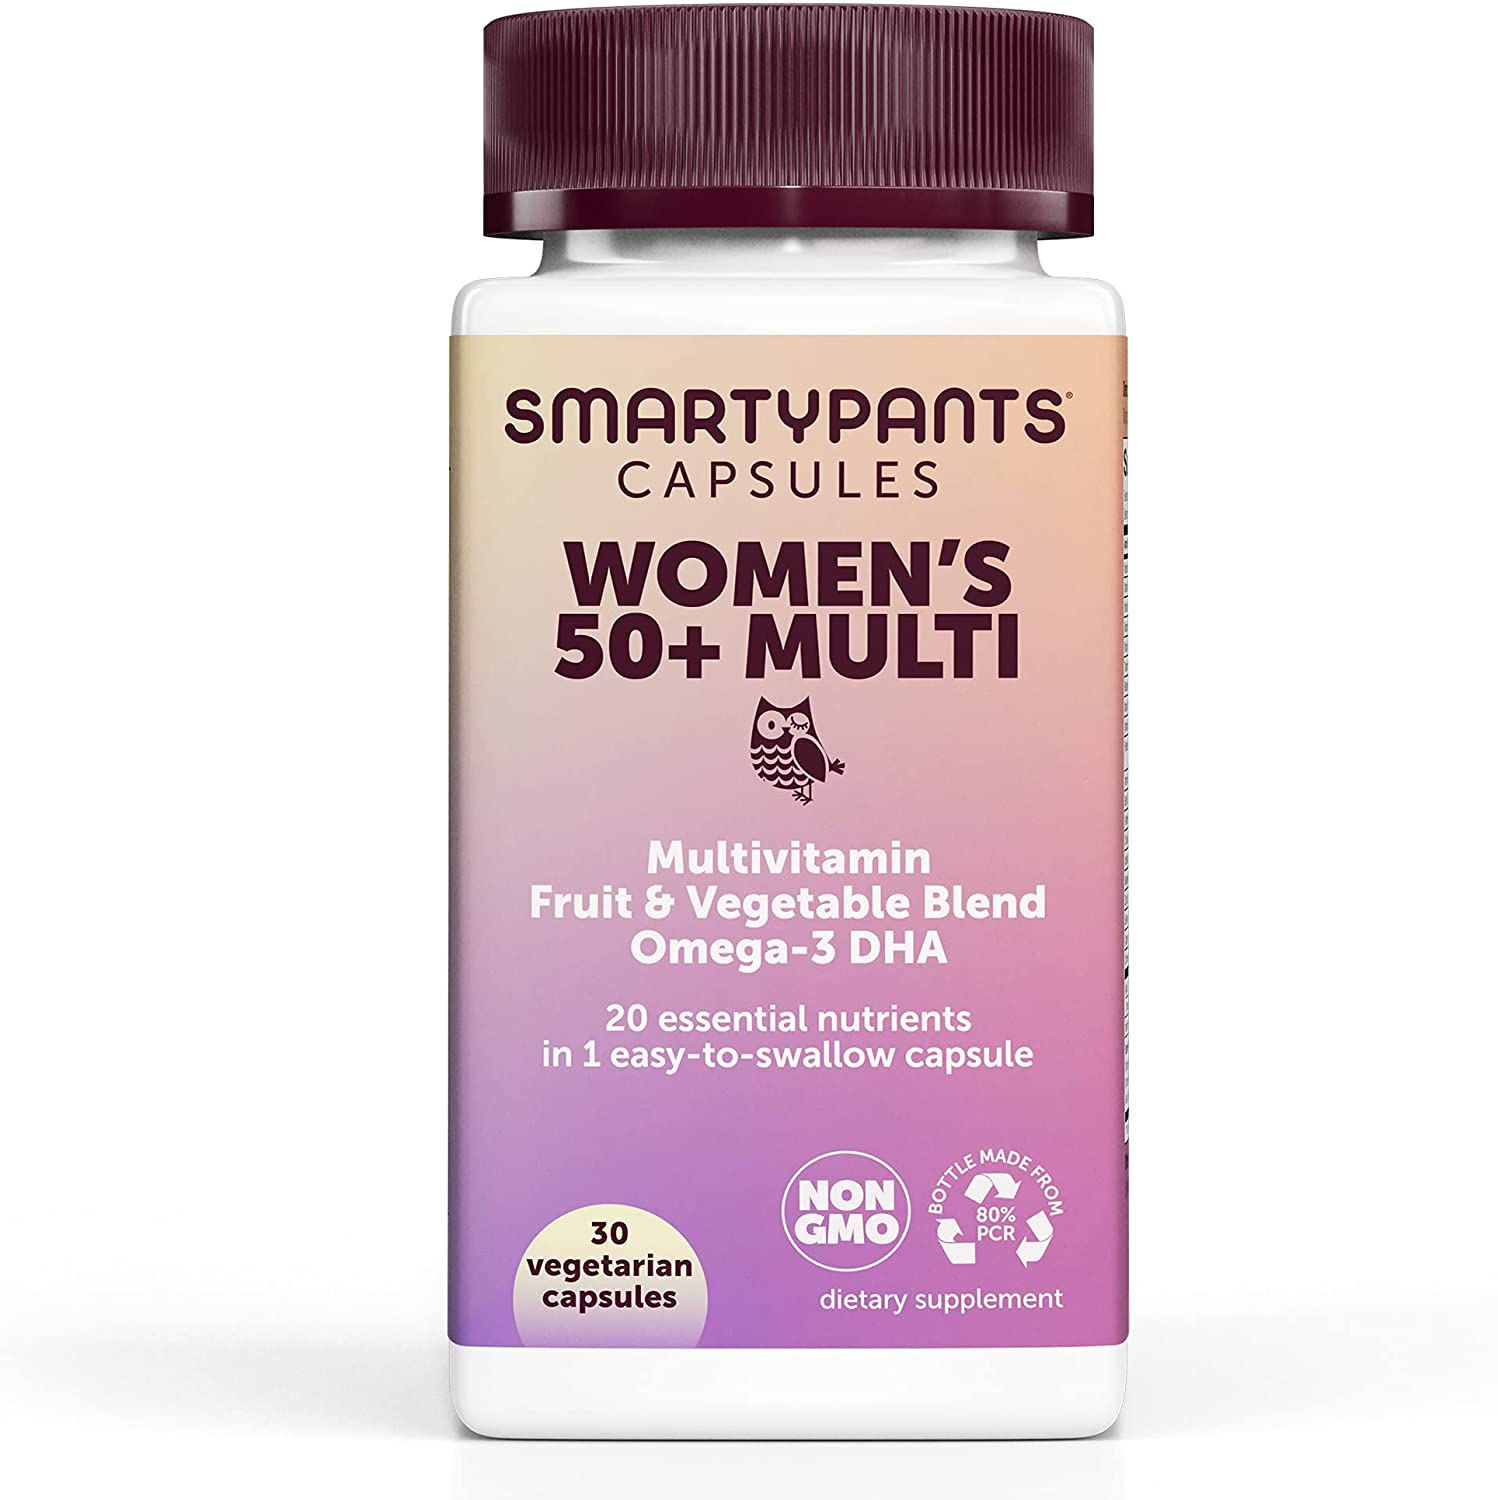 SmartyPants Multivitamin for Women 50+; Omega-3 DHA; Zinc for Immunity; Vitamins D3, C, B6; Biotin, Folate; Vitamin B12 for Energy; Vitamin A for Eyes; Vegetarian (30 Day Supply): Health & Personal Care